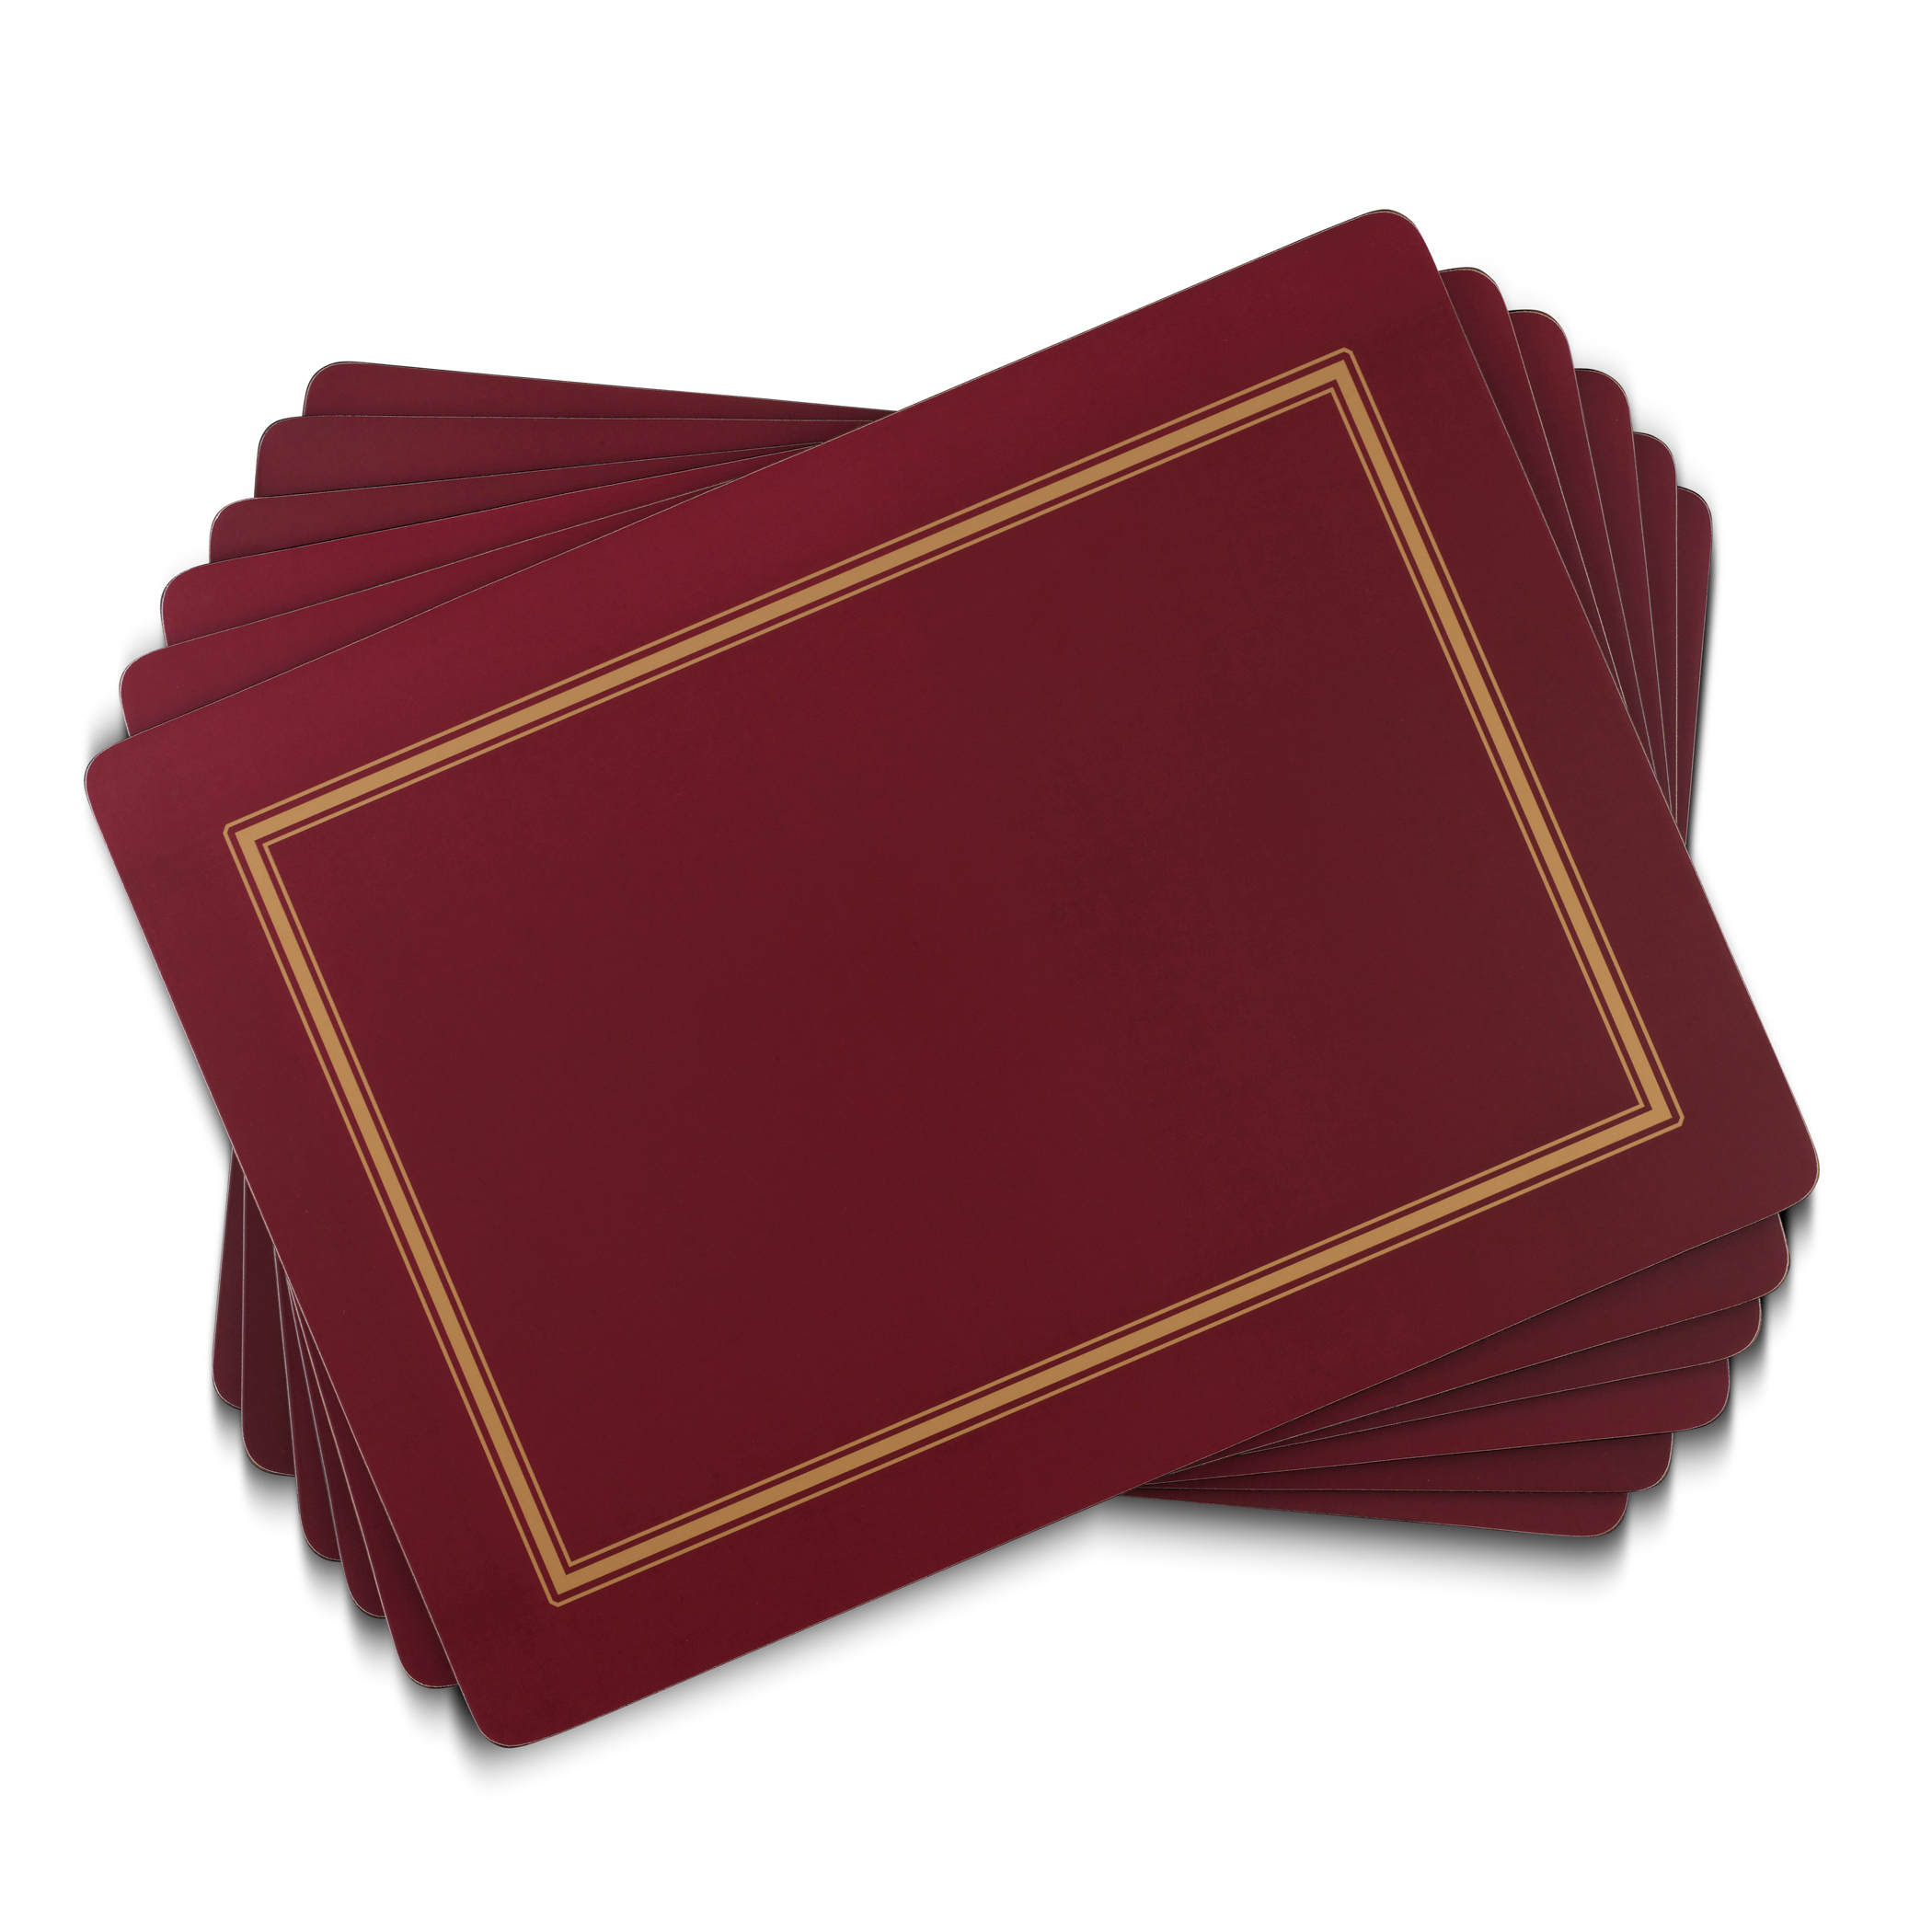 Pimpernel Classic Burgundy Placemats Set of 4 image number 0